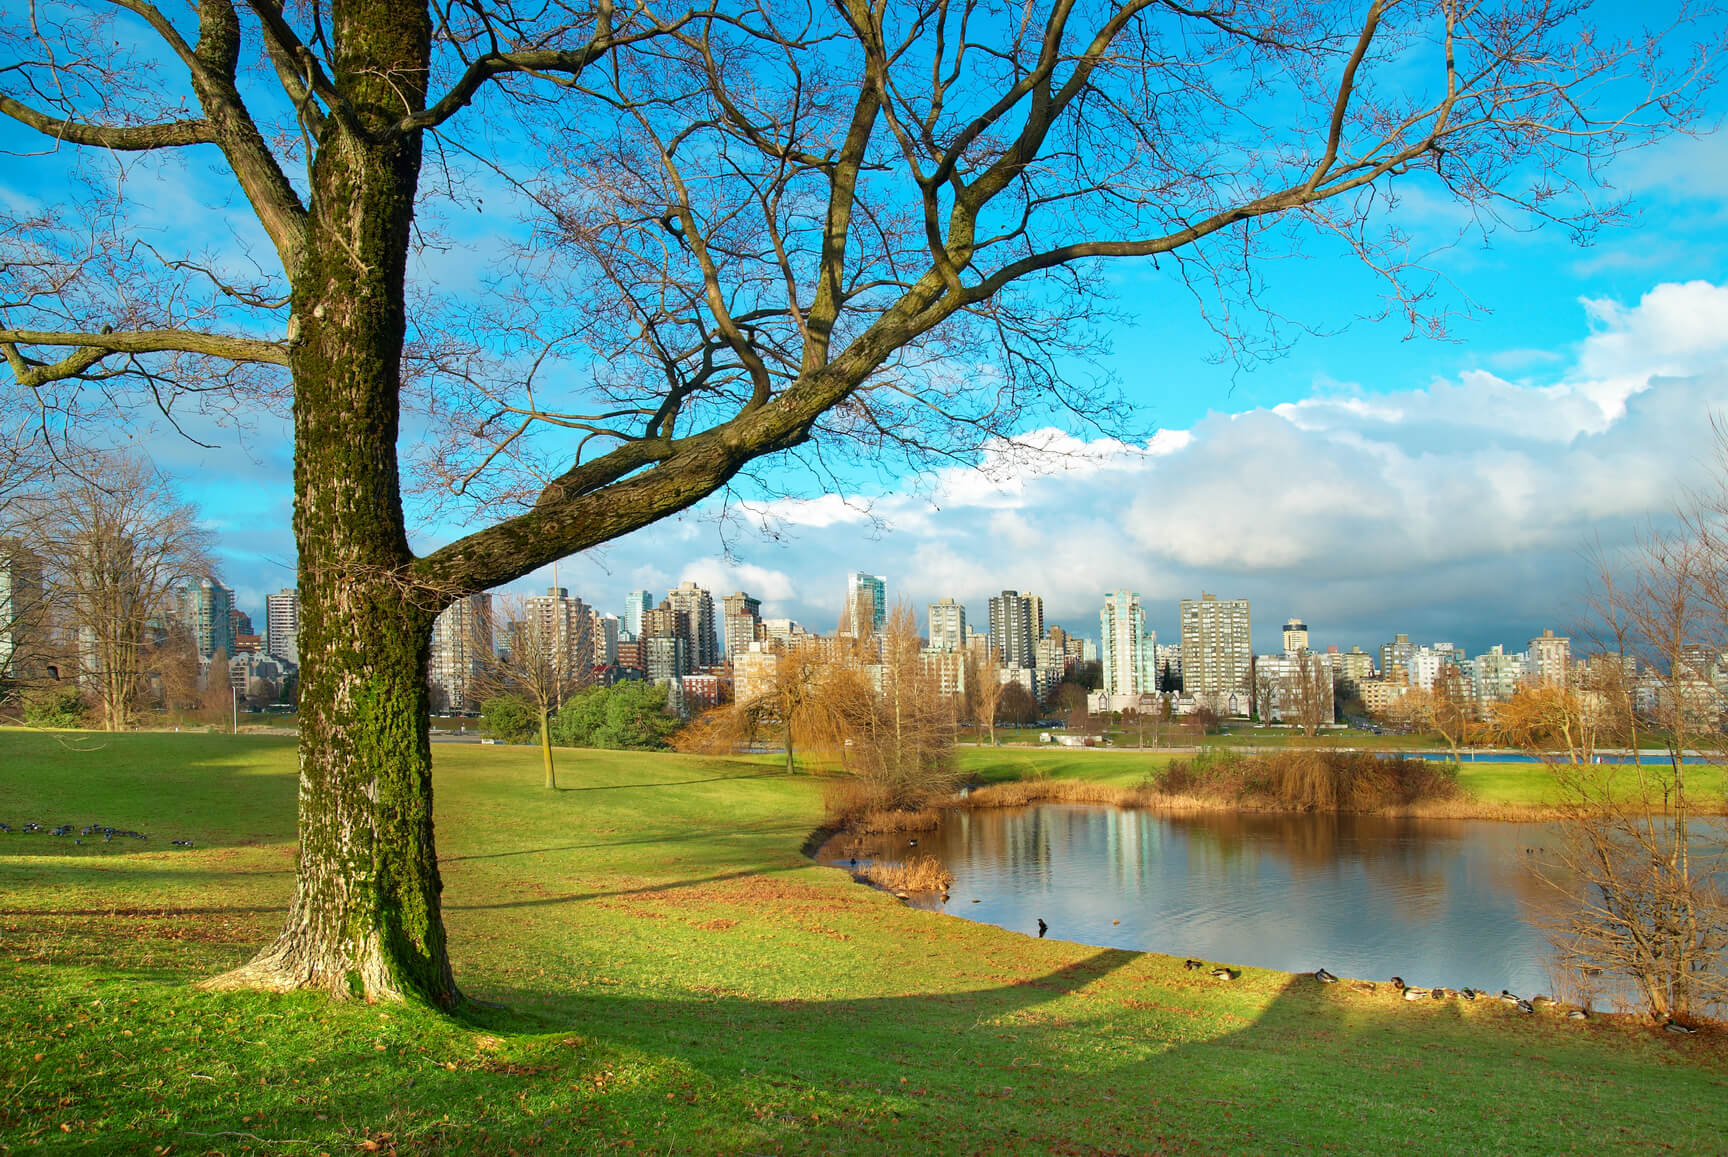 Fort Lauderdale to Vancouver, Canada for only $256 roundtrip (Oct-Mar dates)